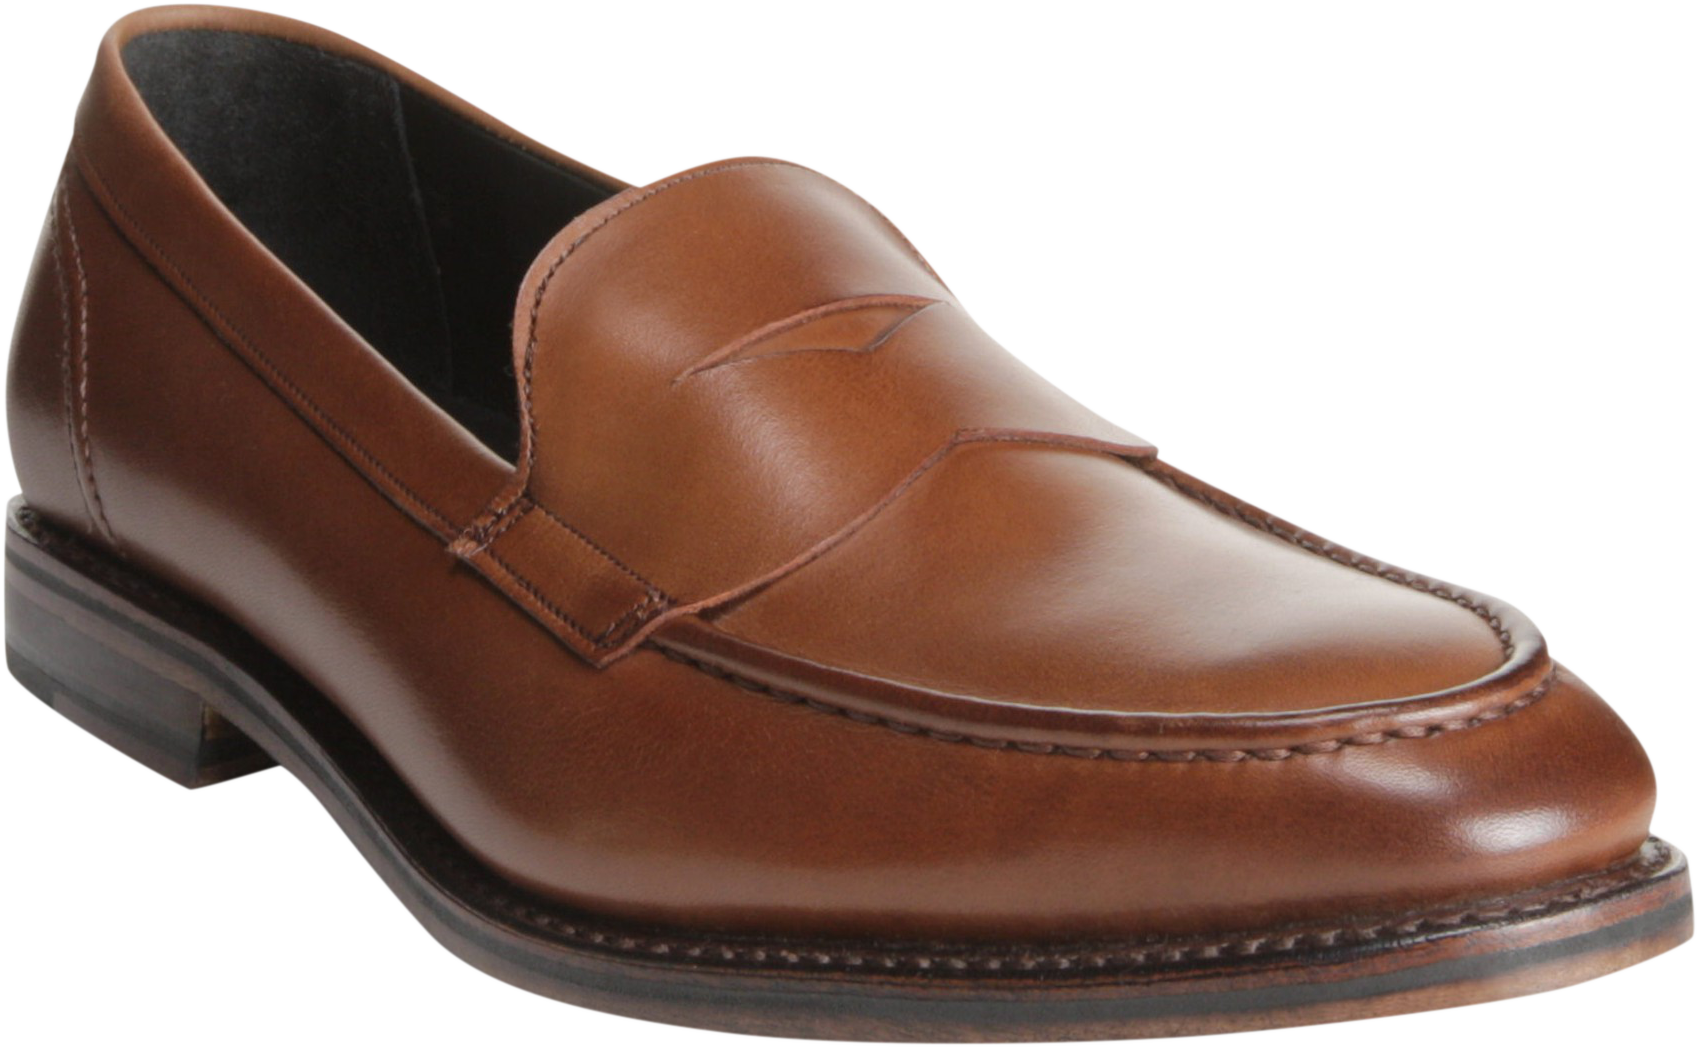 a1cb5c373e8 Allen Edmonds Mercer Street Penny Loafers - Allen Edmonds